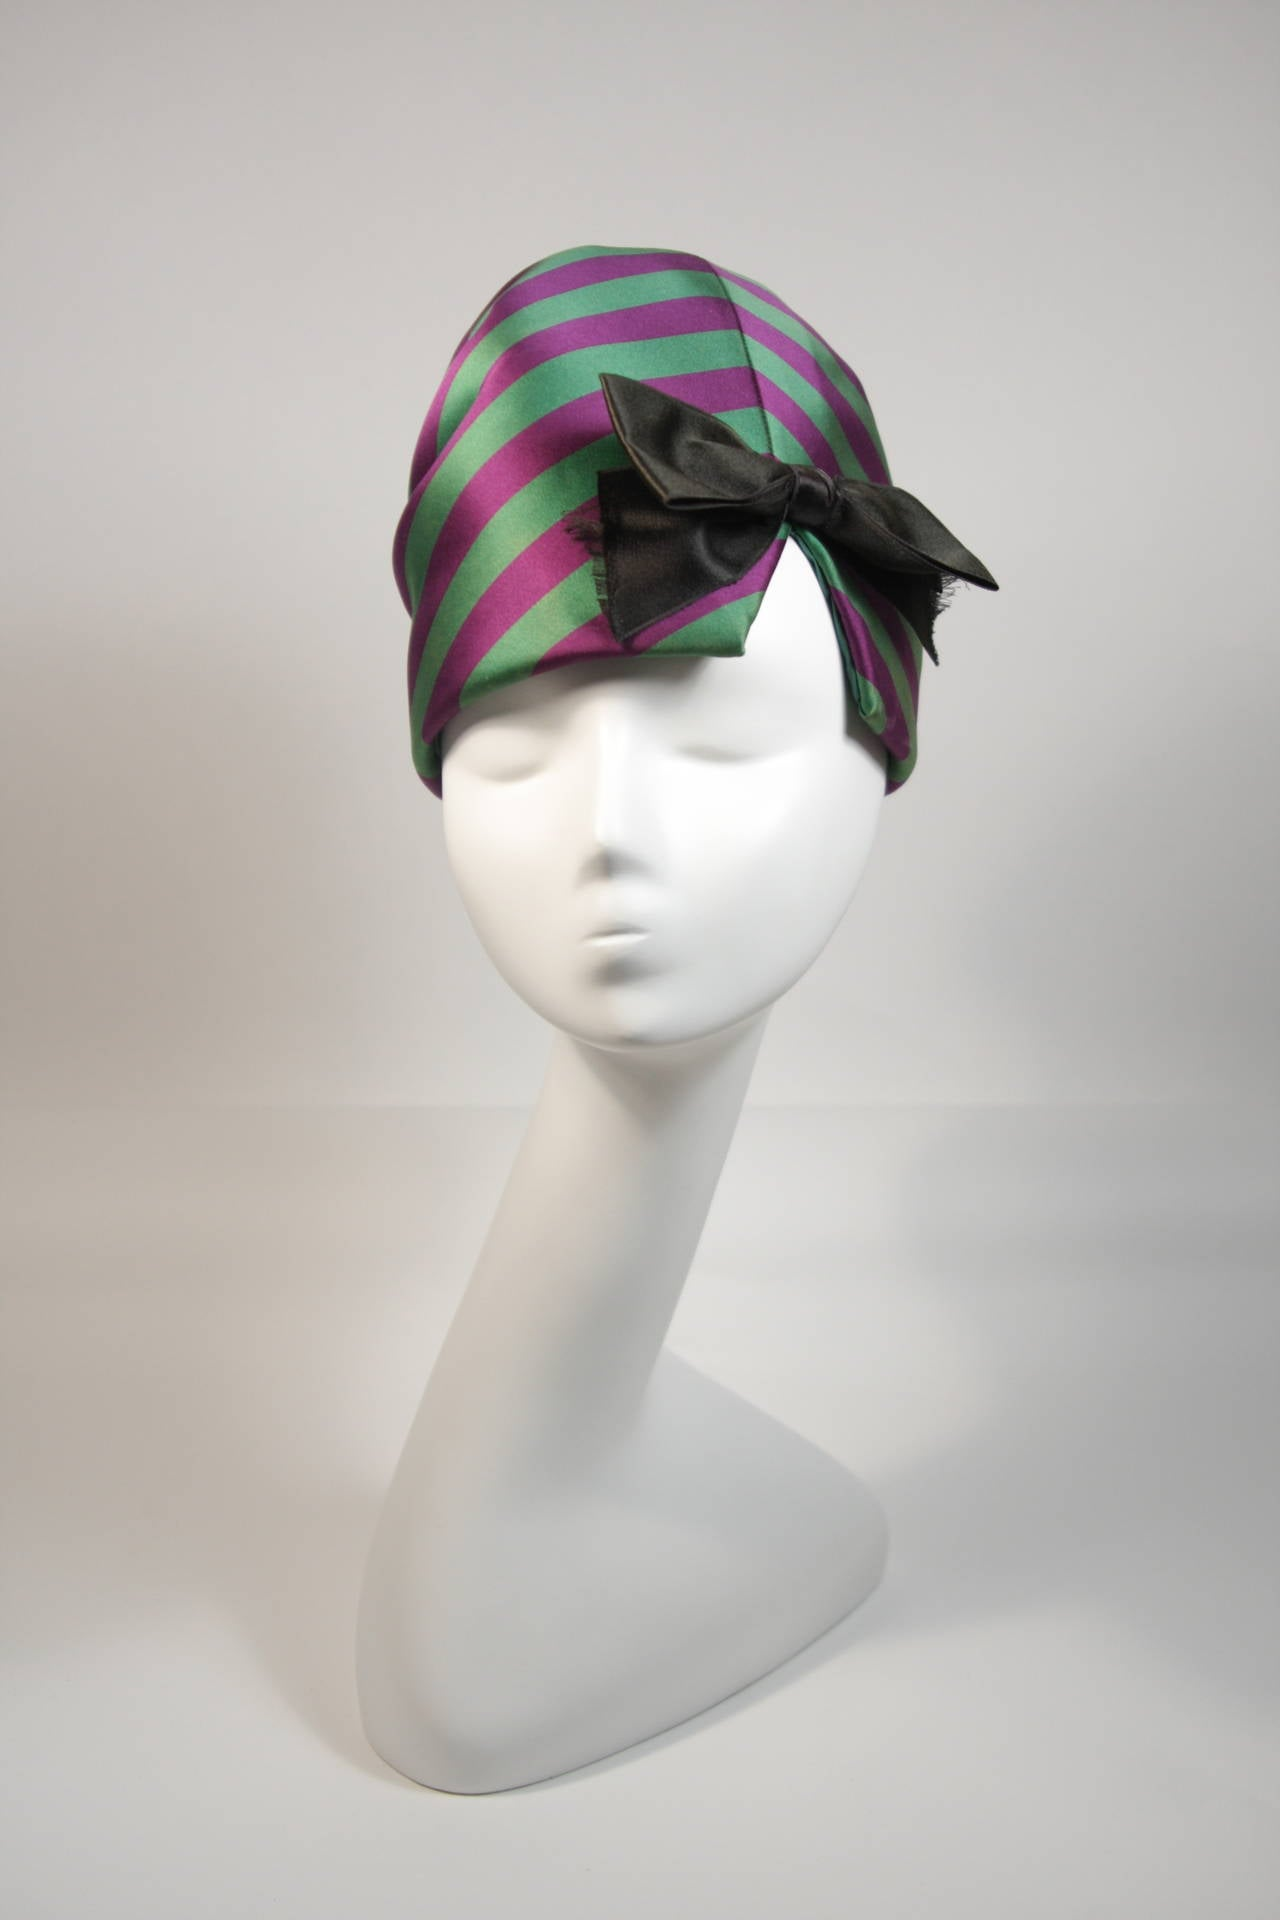 Yves Saint Laurent Rive Gauche Purple and Green Silk Rouched Hat with Bow 2